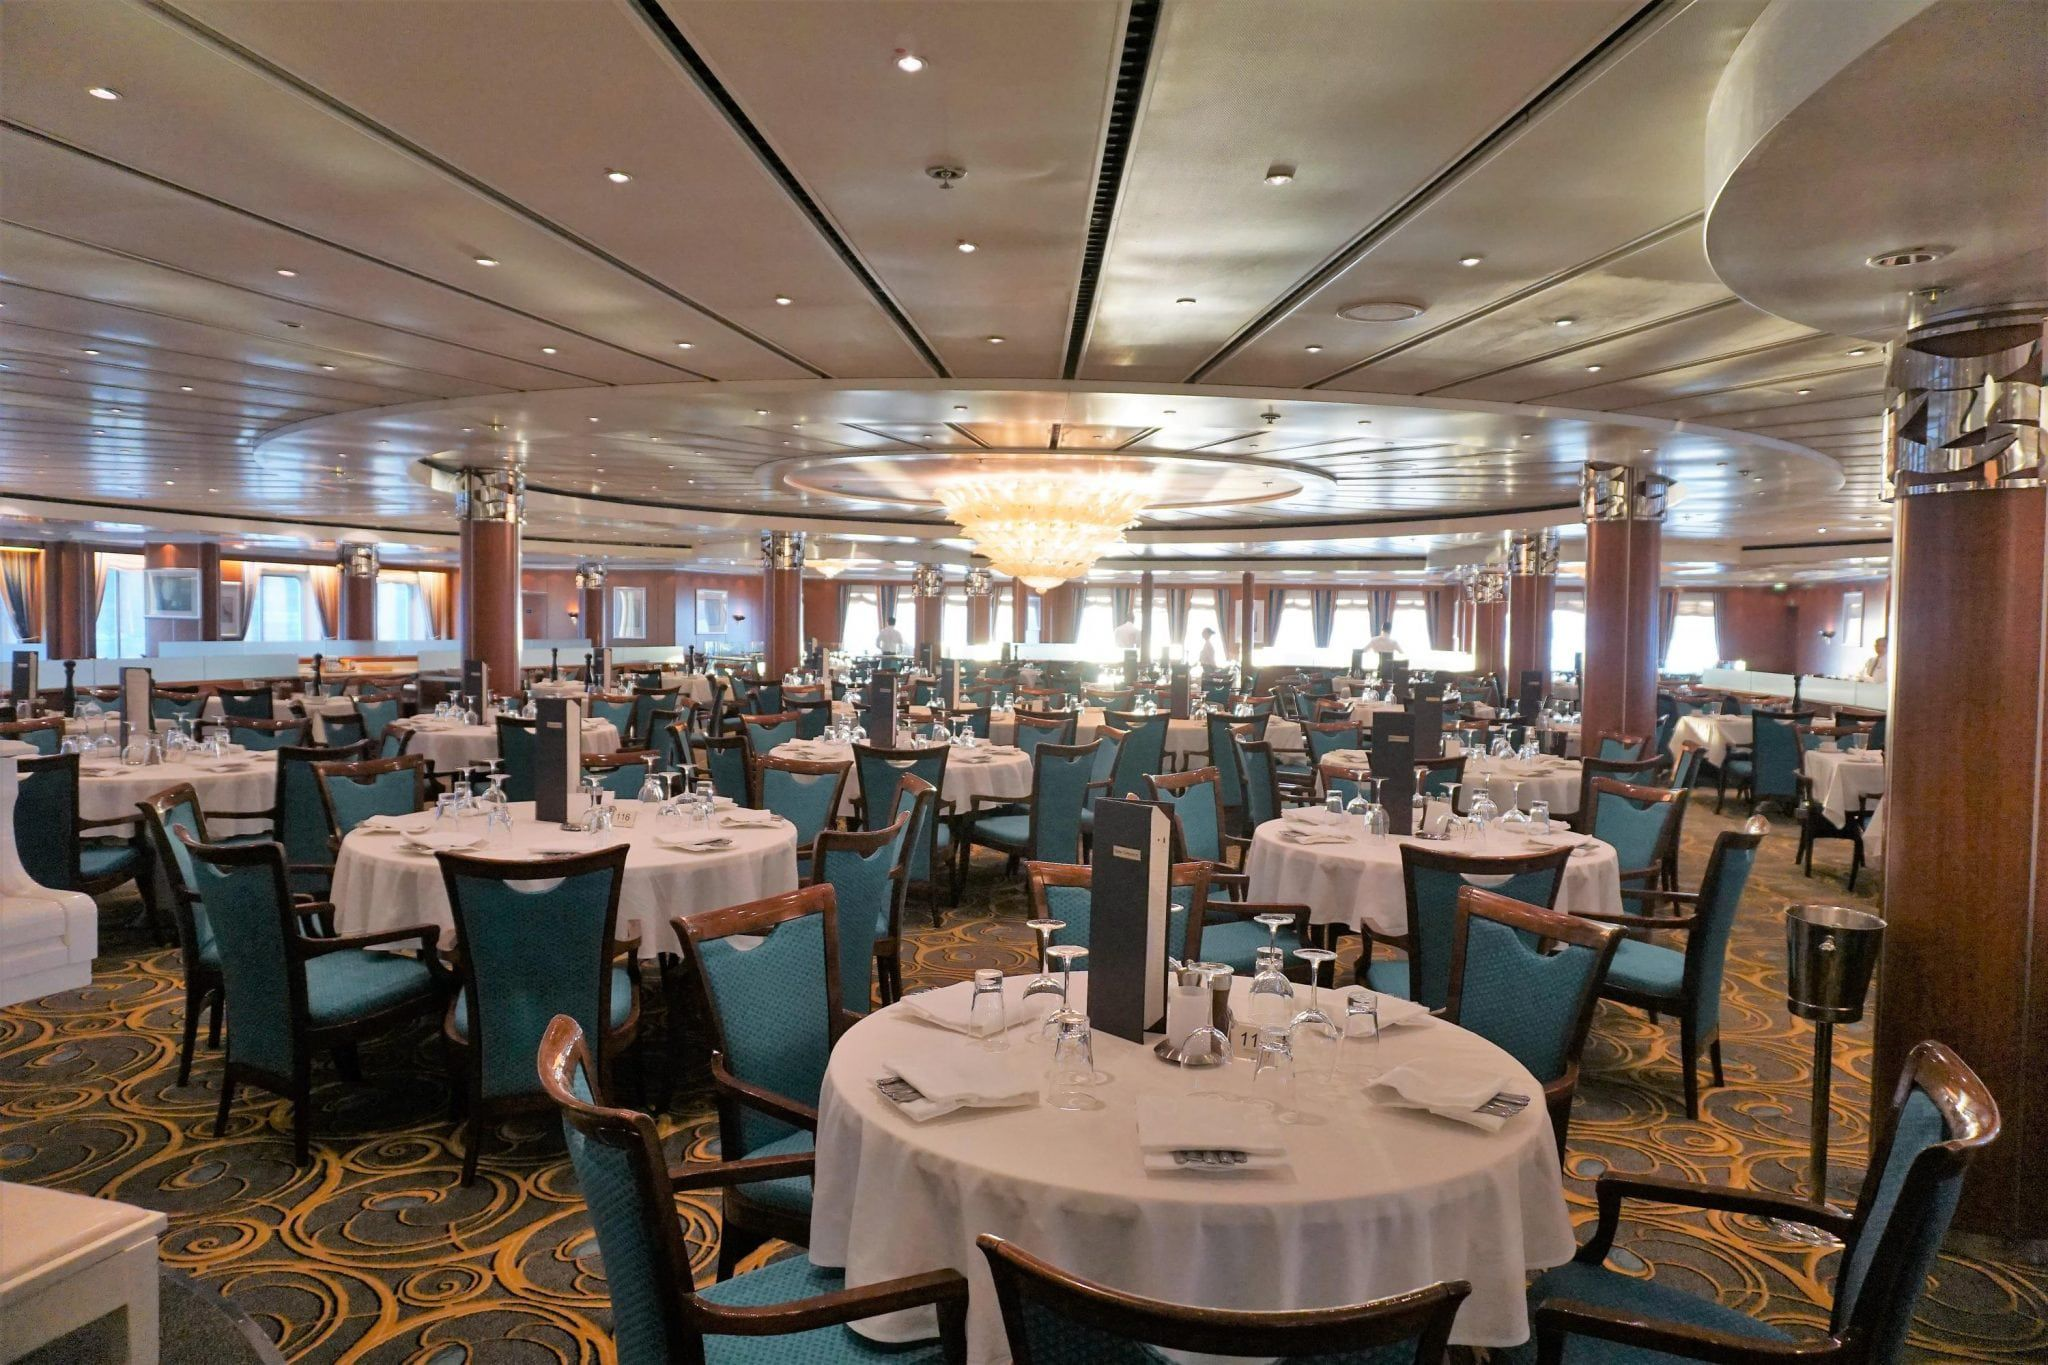 Why You Should Use a Travel Agent to Book a Cruise